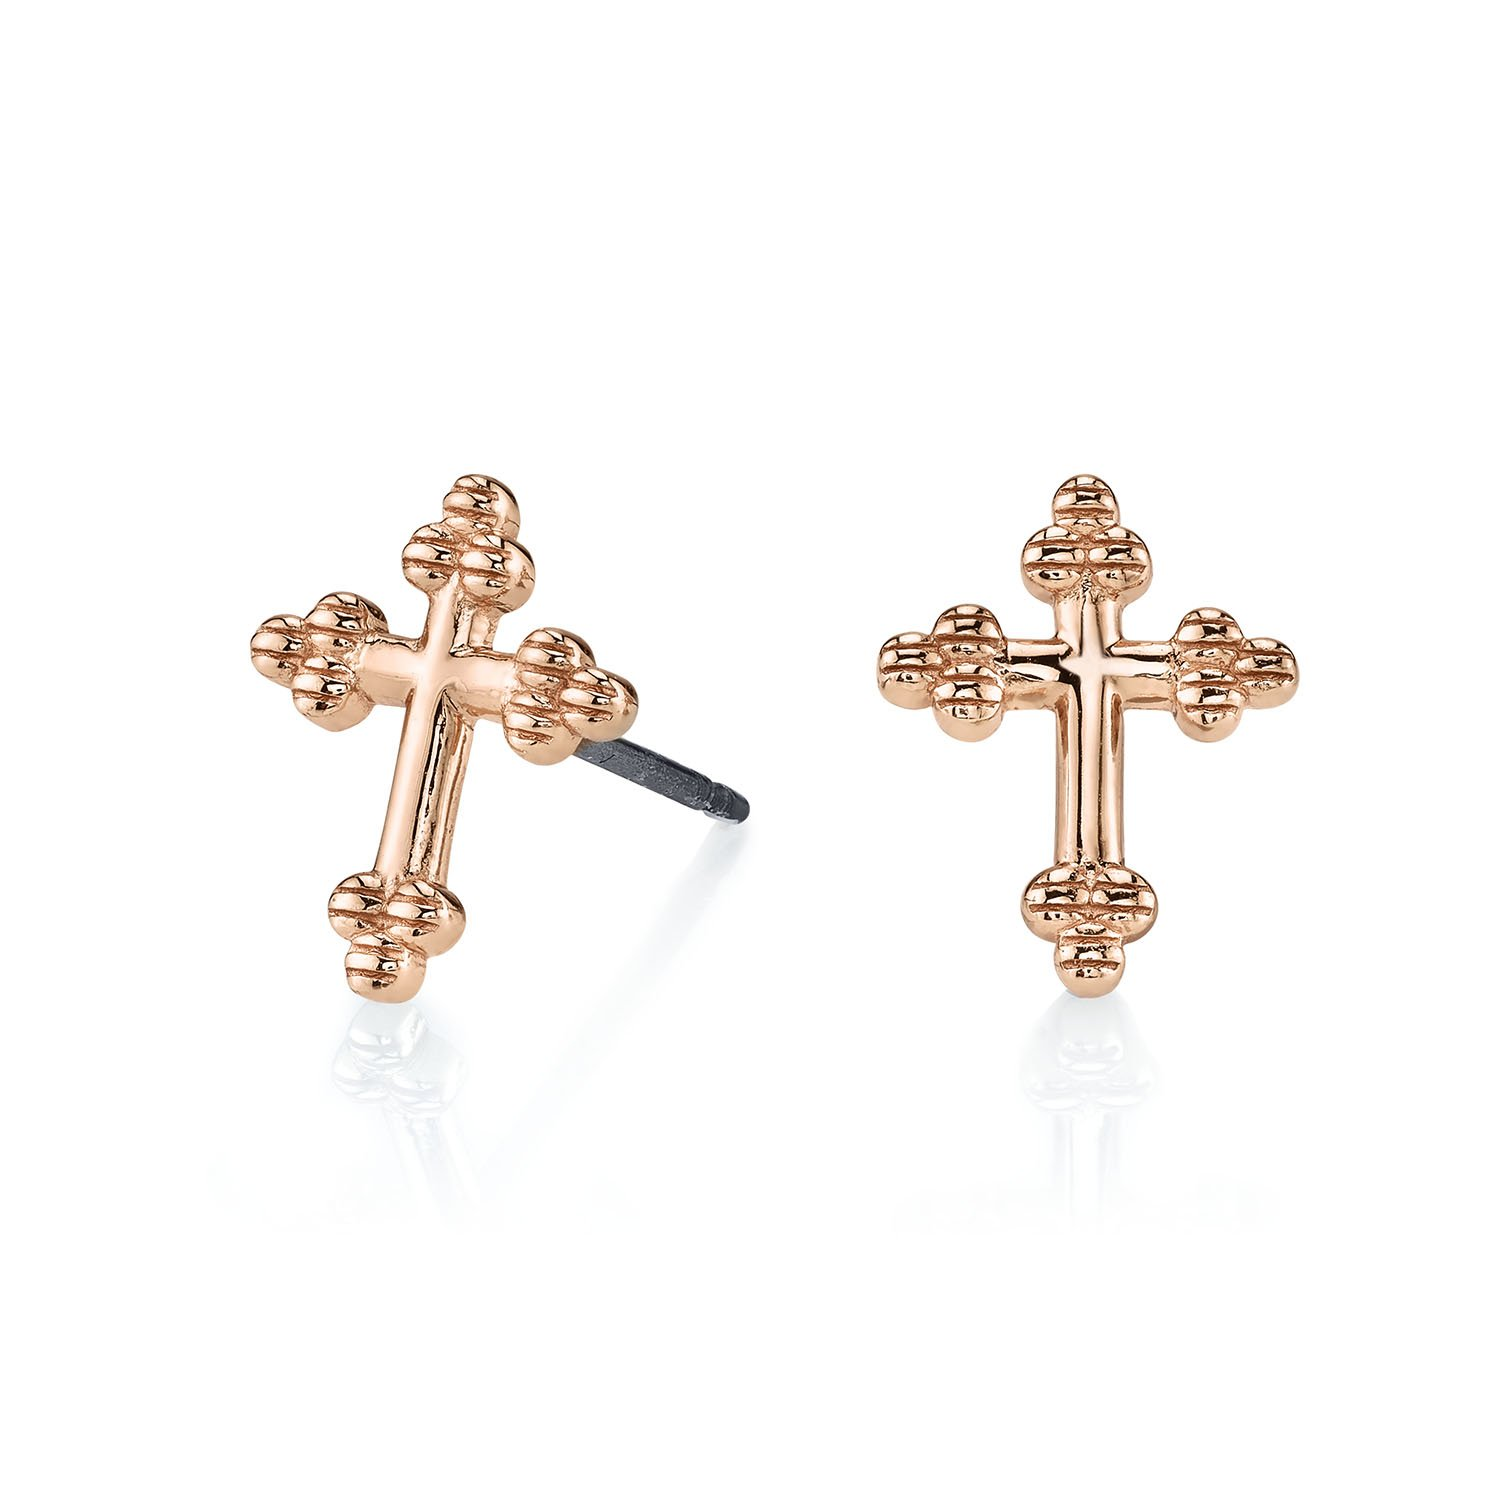 CHARLIZE GADBOIS 925 Sterling Silver Cross Stud Earrings, Rose Gold Plated, Hypoallergenic